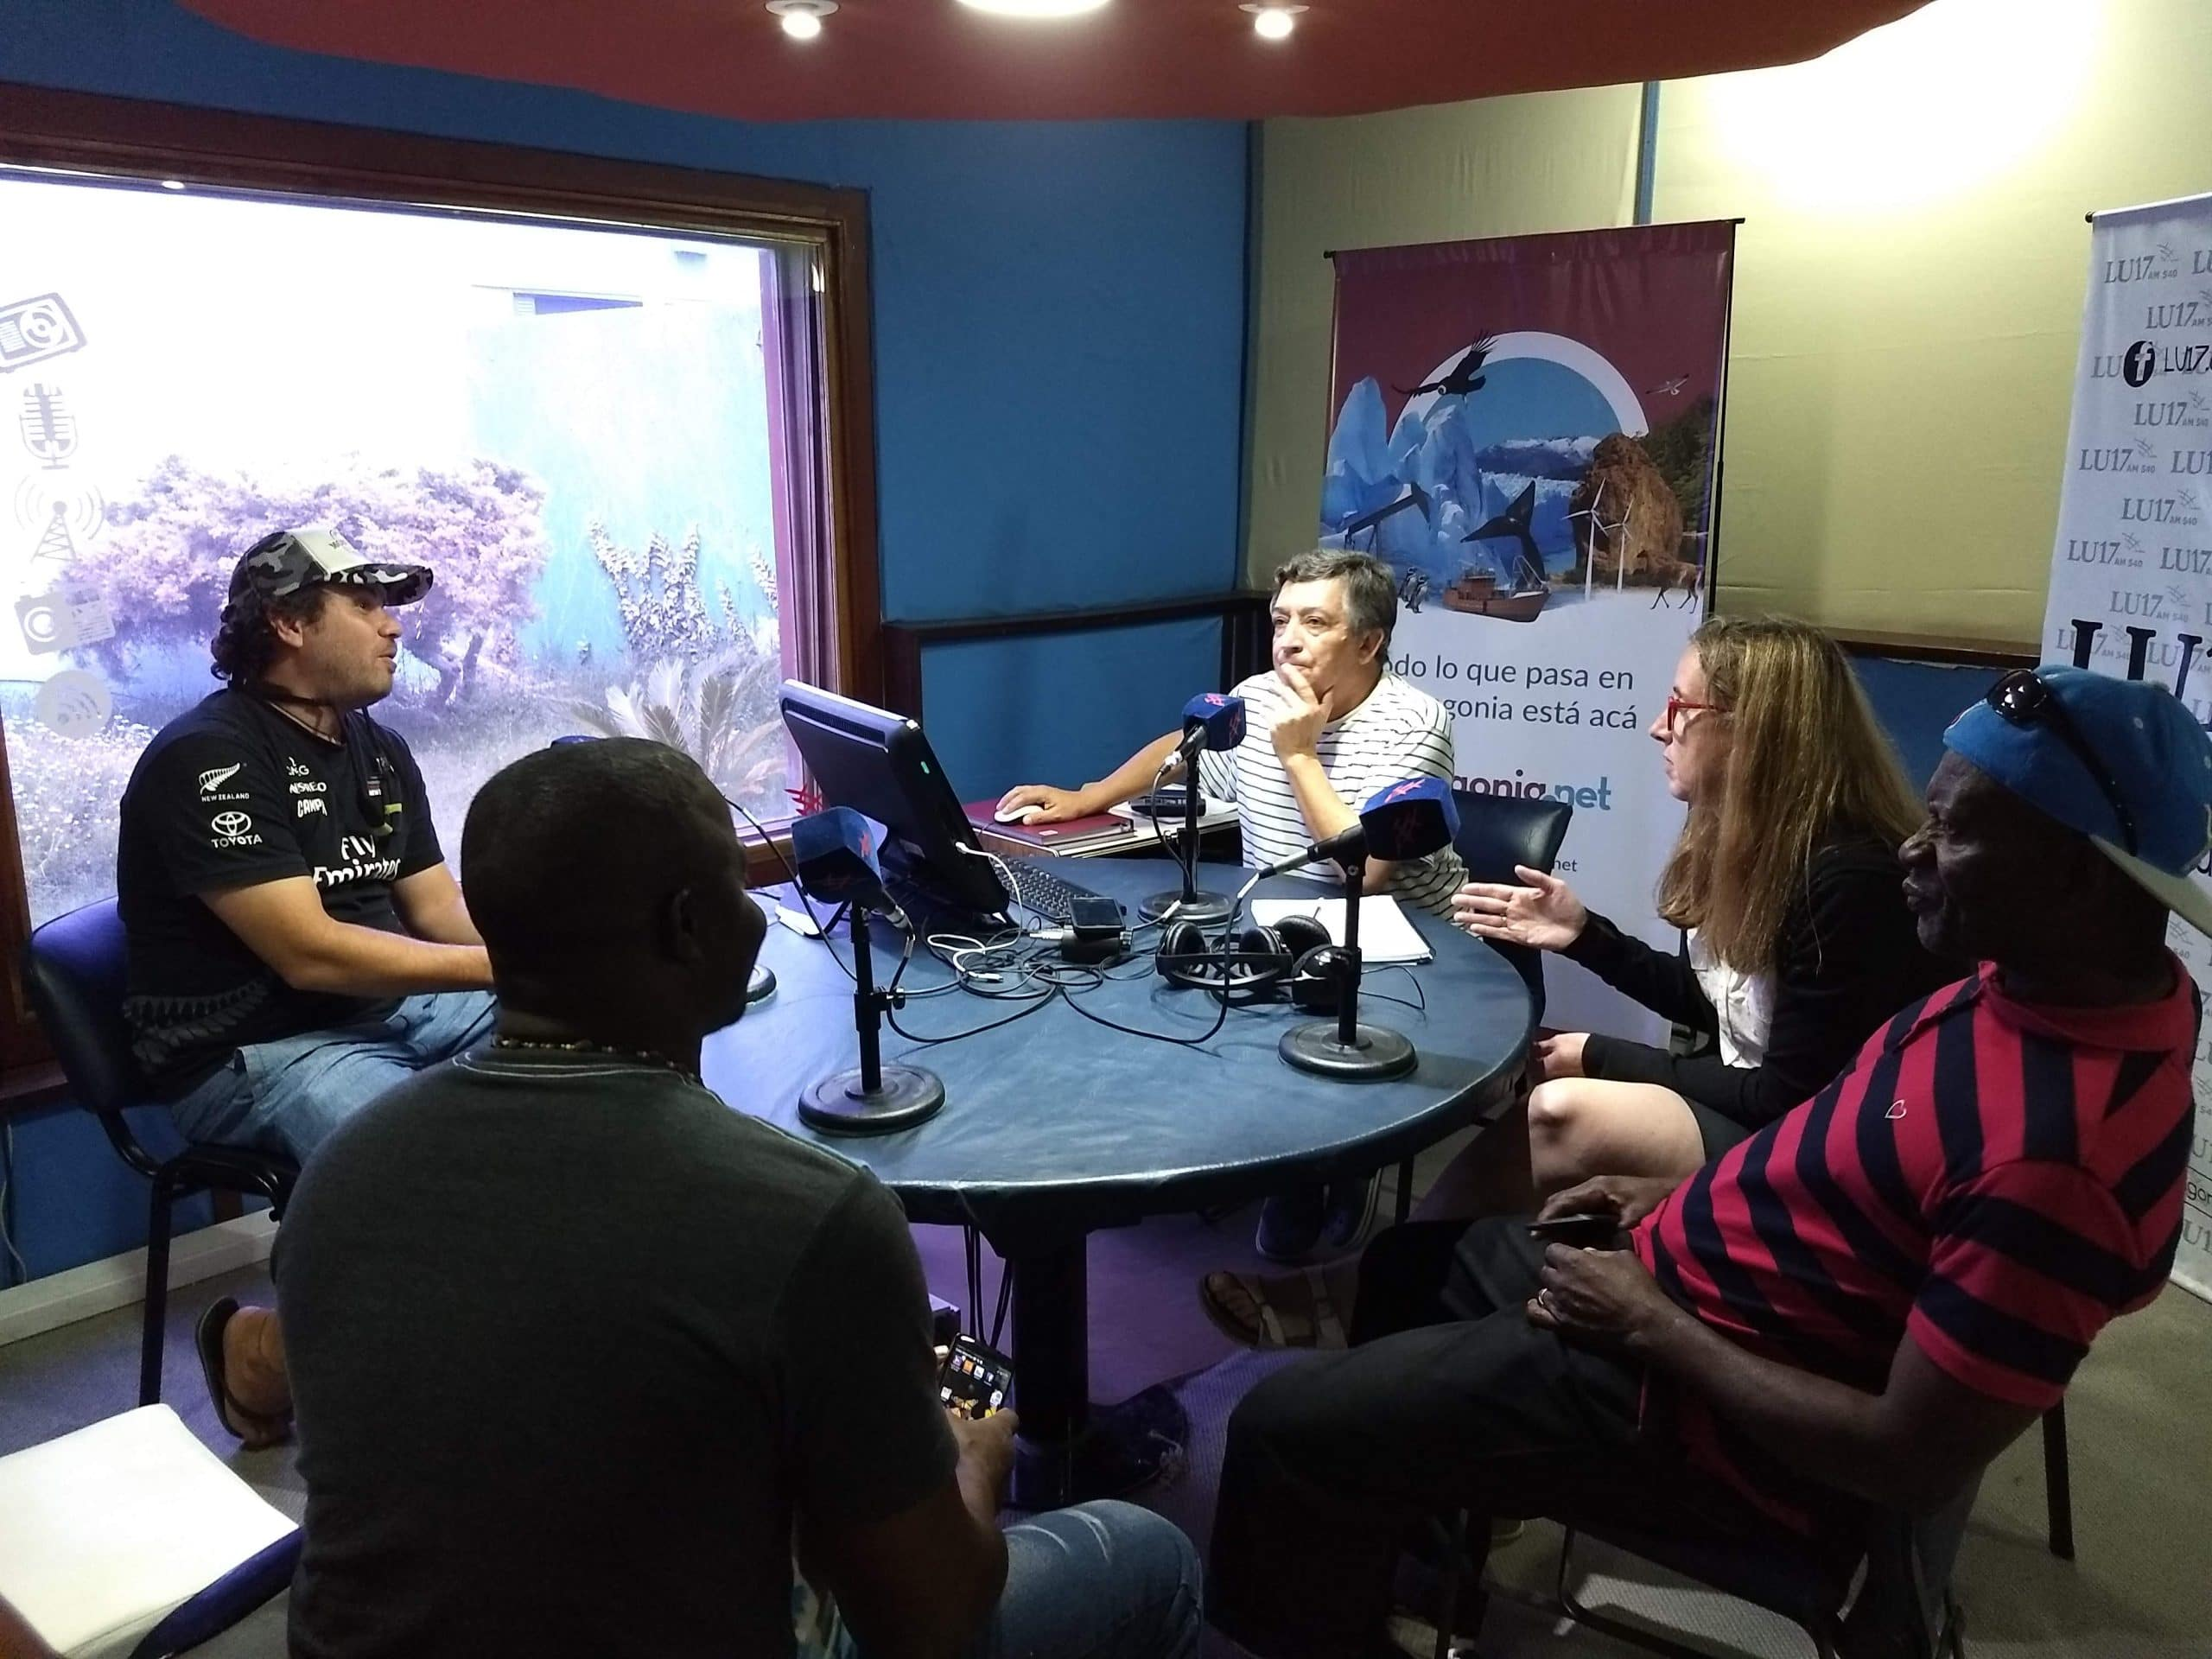 Lennox, Kirk and Carolina give a radio interview on a local station